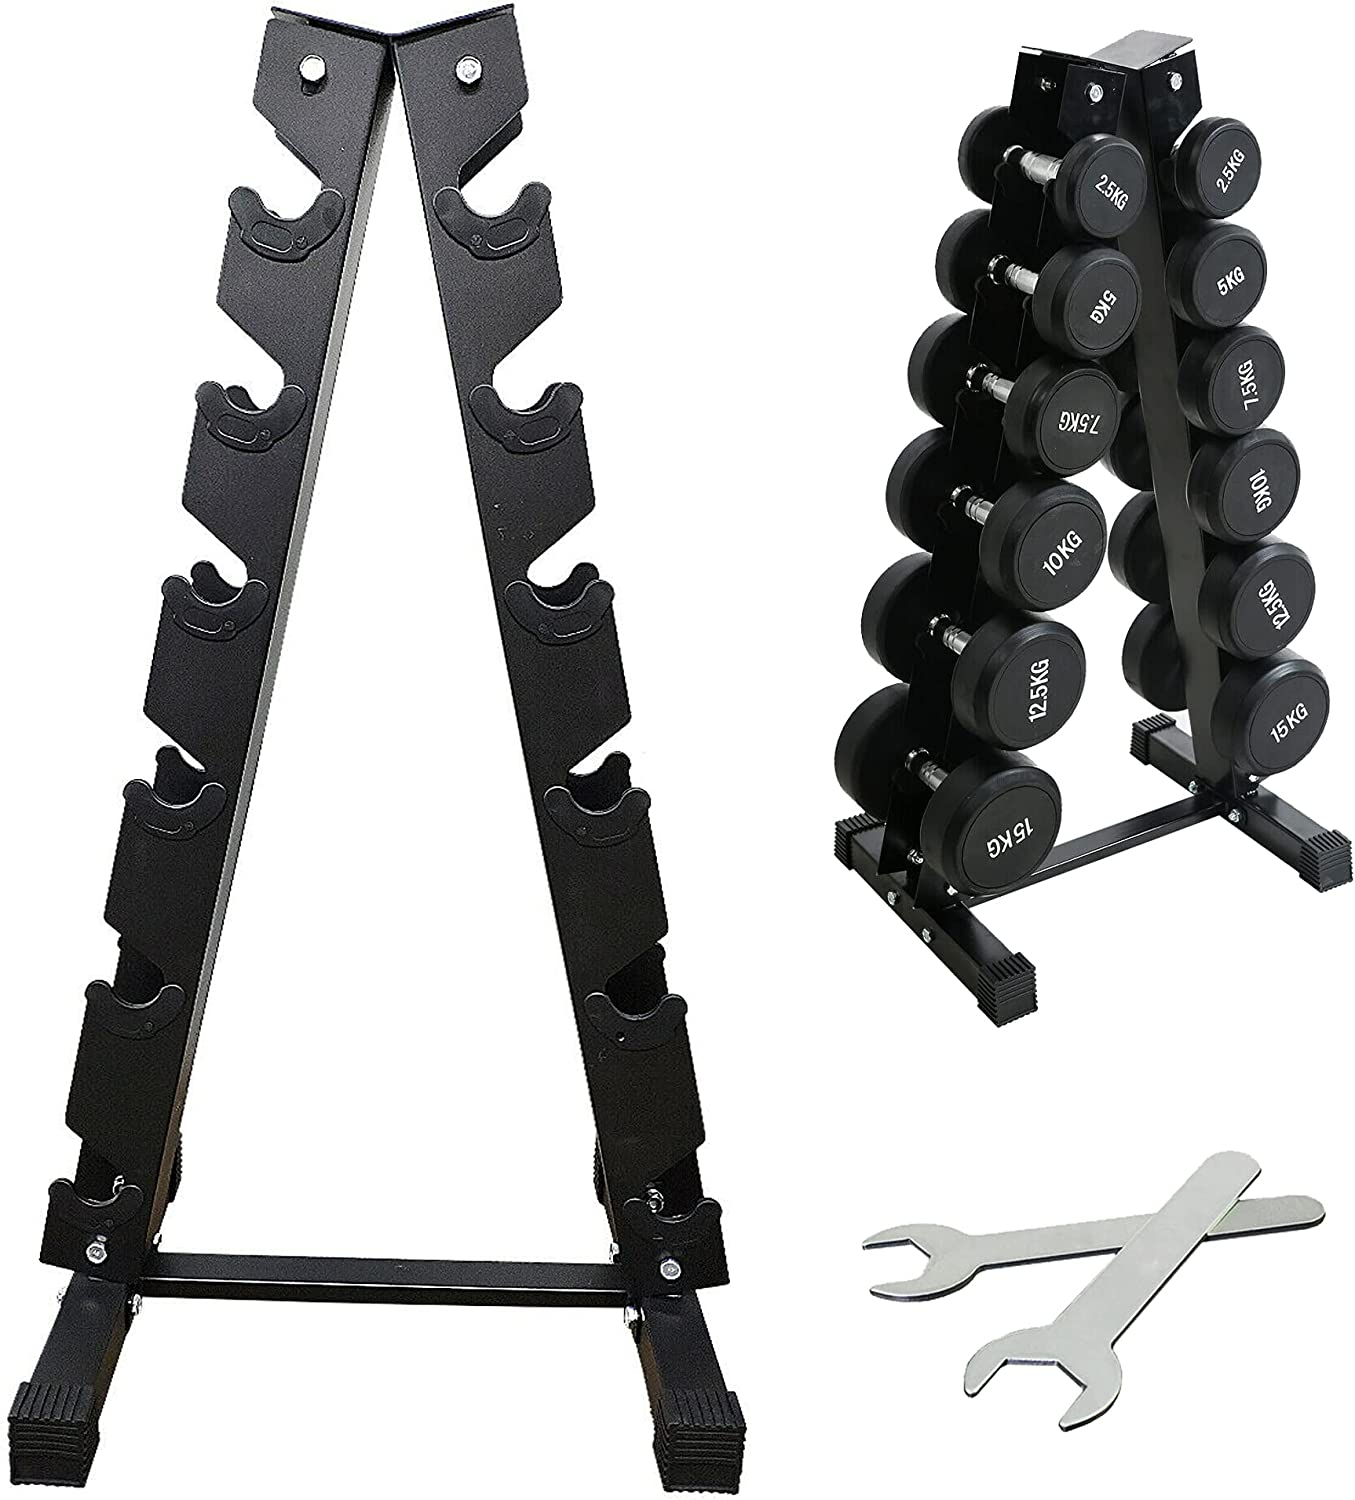 CHPPEY 6 Tier A-Frame Dumbbell Rack Stand Only - Weight Rack for Dumbbells, Weight Organizer Storage Rack for Home Gym (Weight Capacity: 500lbs)